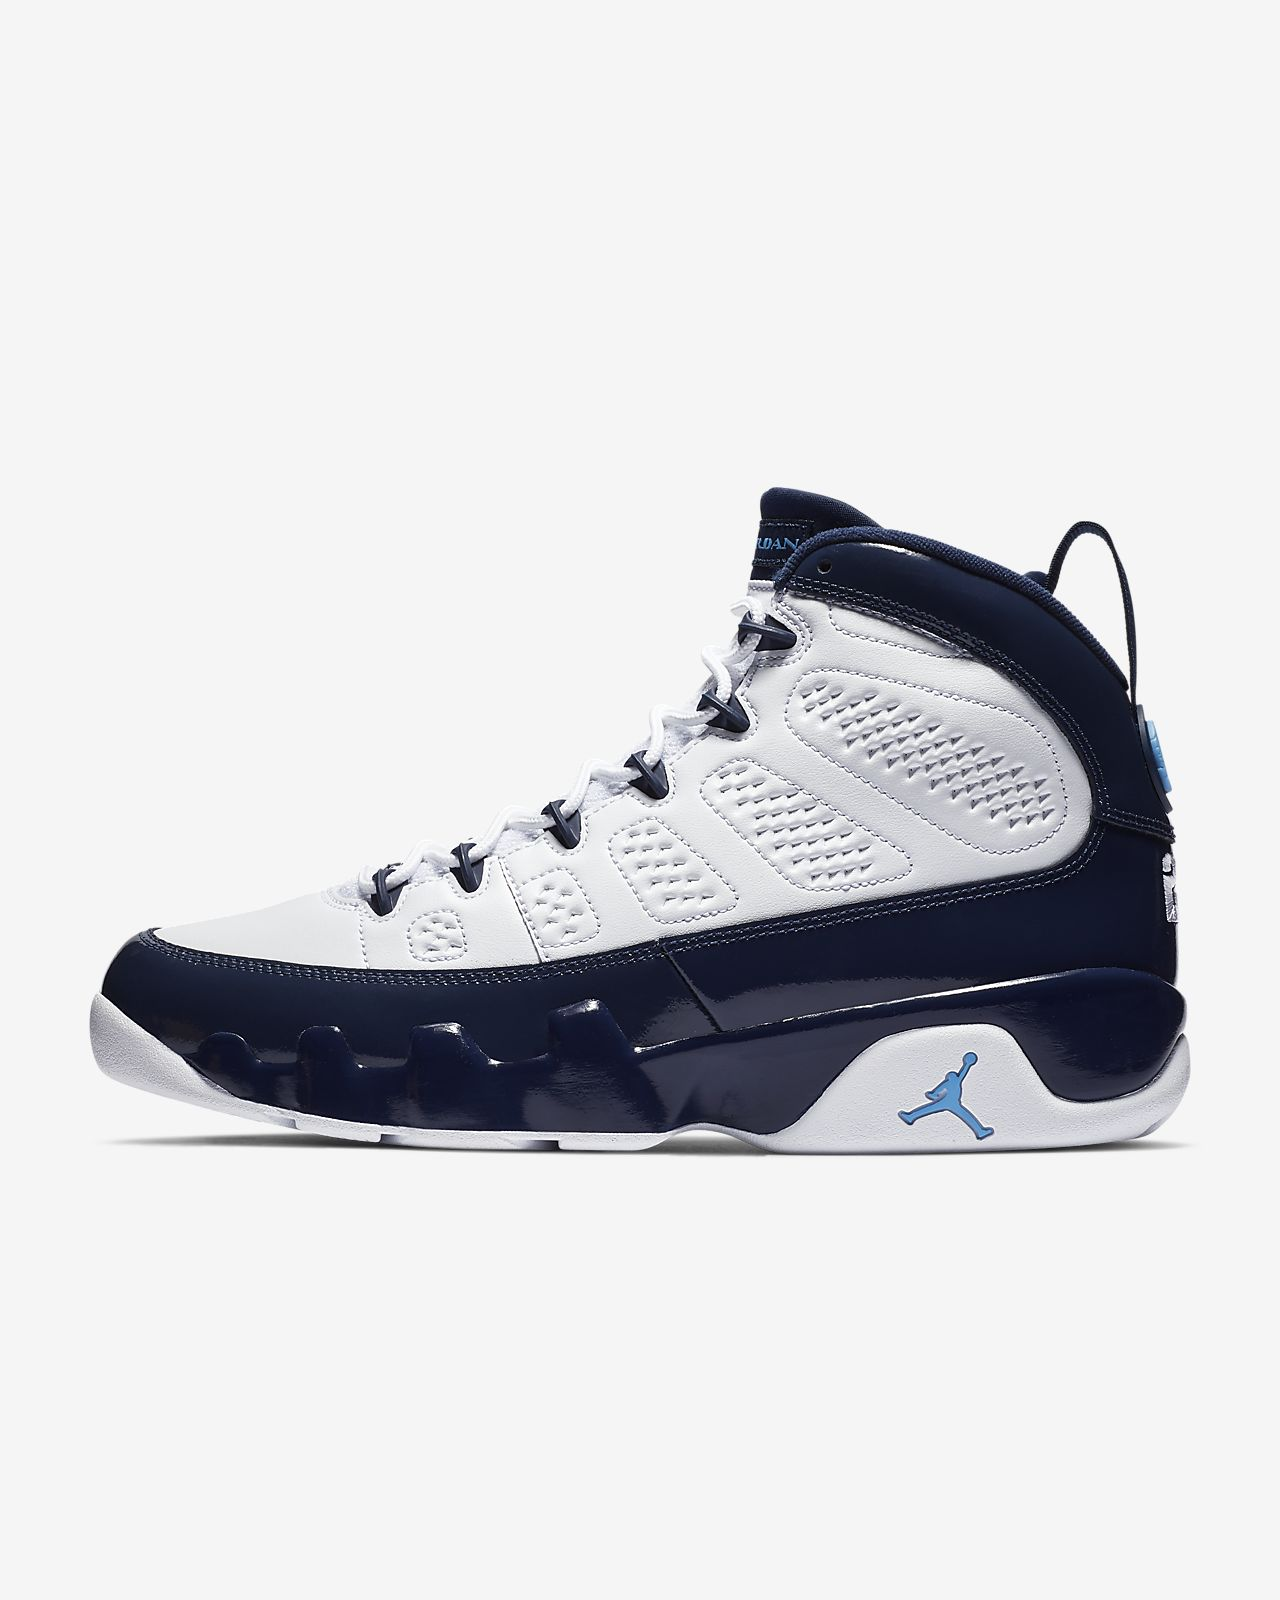 separation shoes 3e5f8 76228 Men s Shoe. Air Jordan 9 Retro